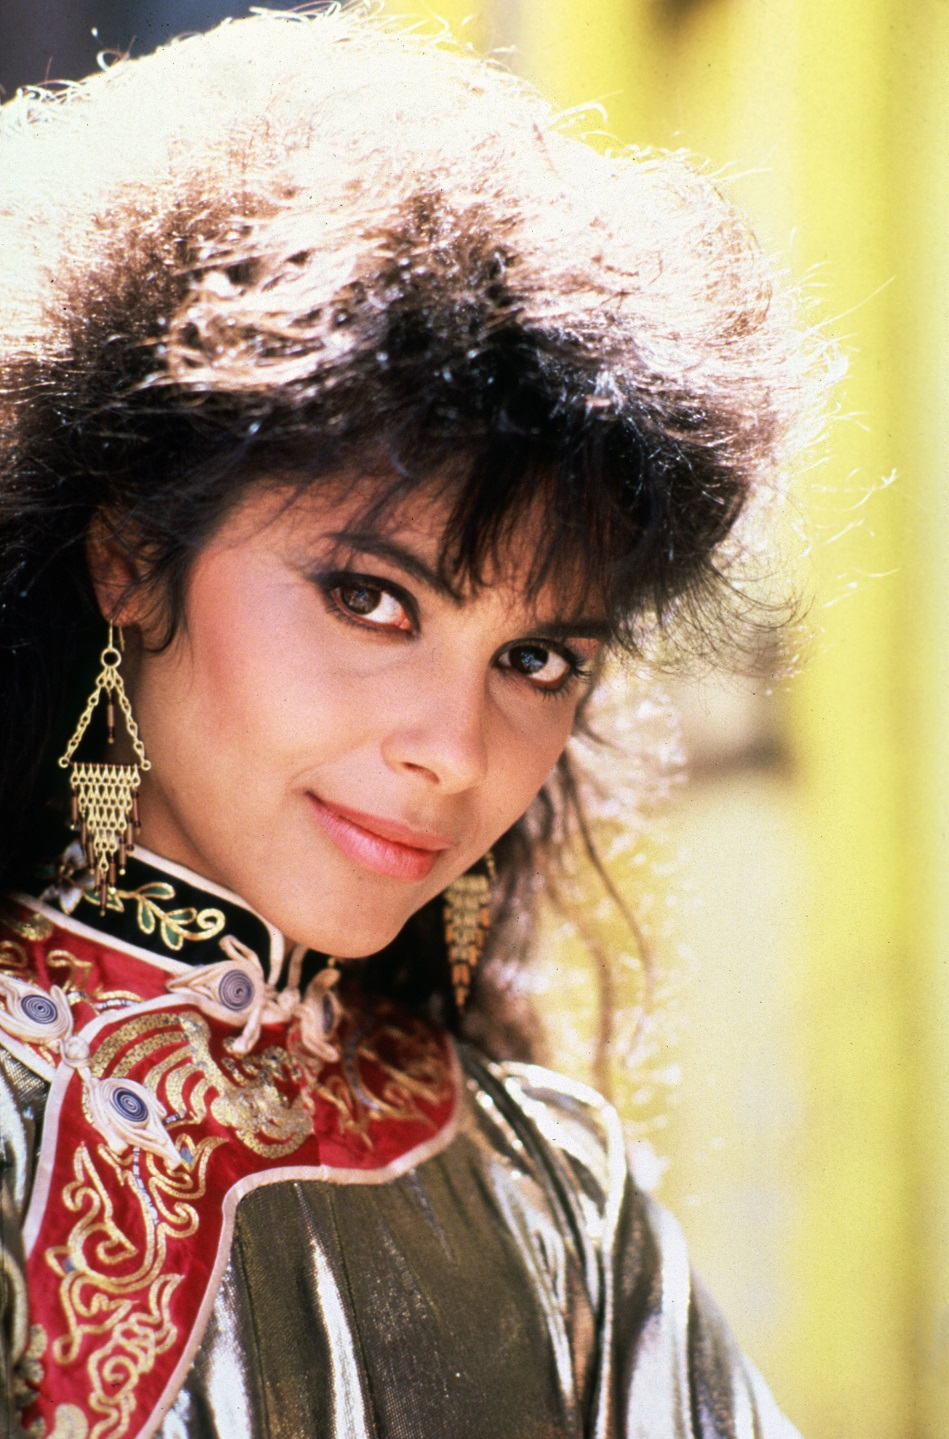 The Lair of the Silver Fox.: Denise Matthews, a/k/a Vanity ...